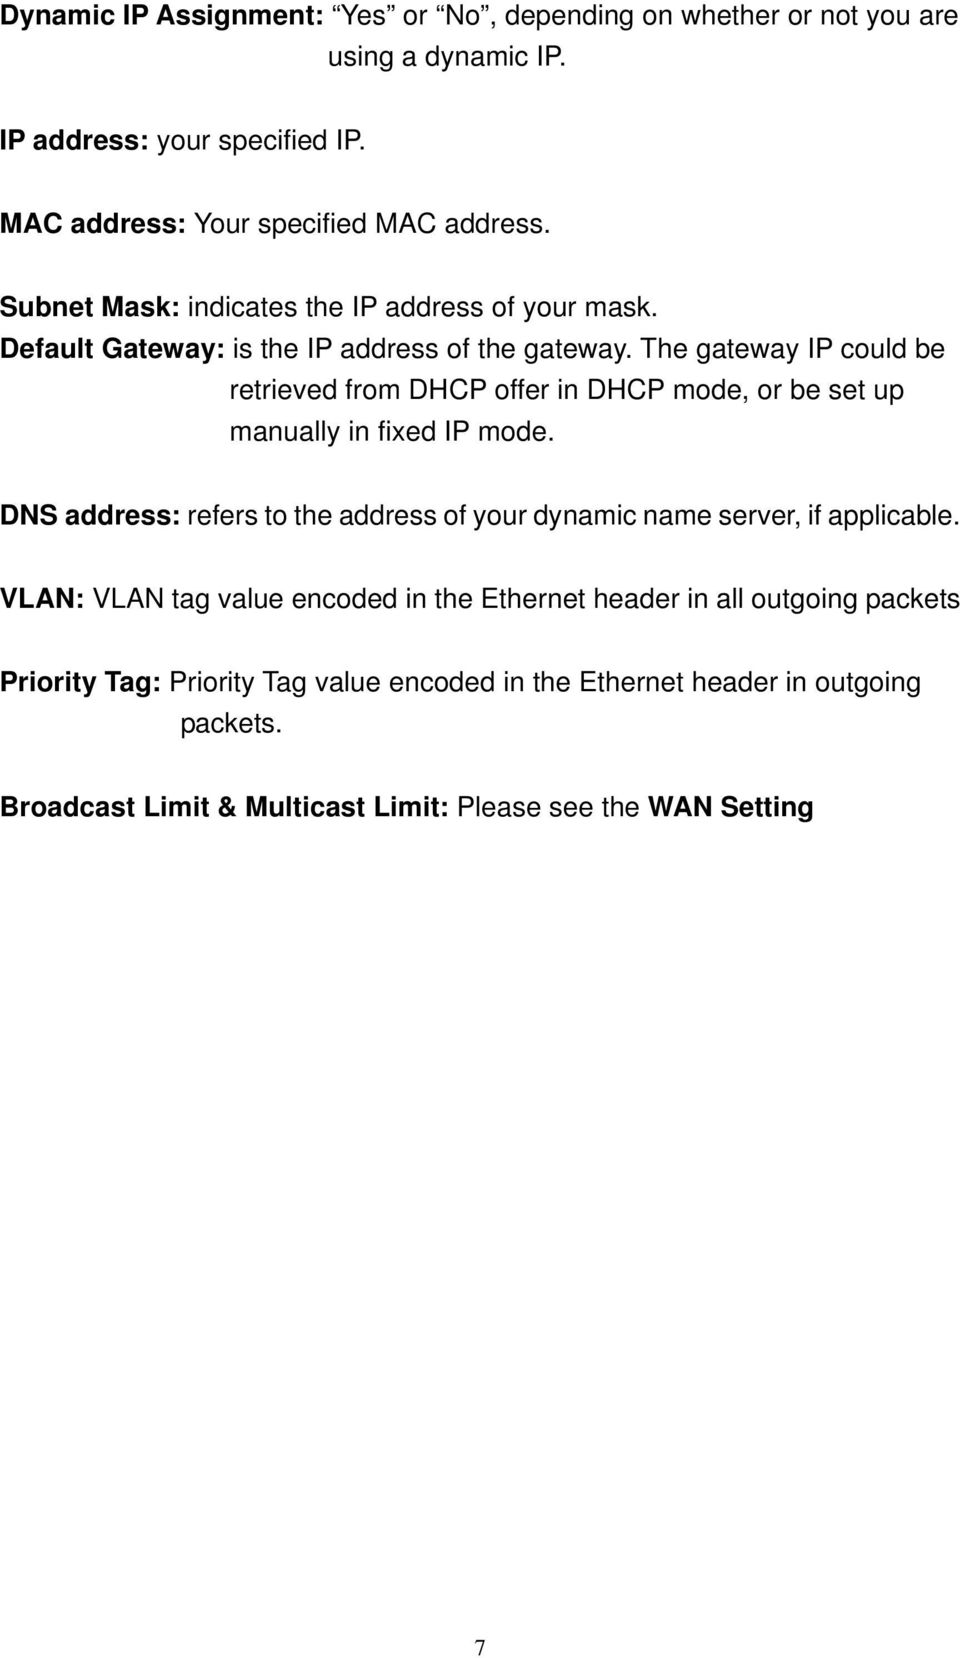 The gateway IP could be retrieved from DHCP offer in DHCP mode, or be set up manually in fixed IP mode.